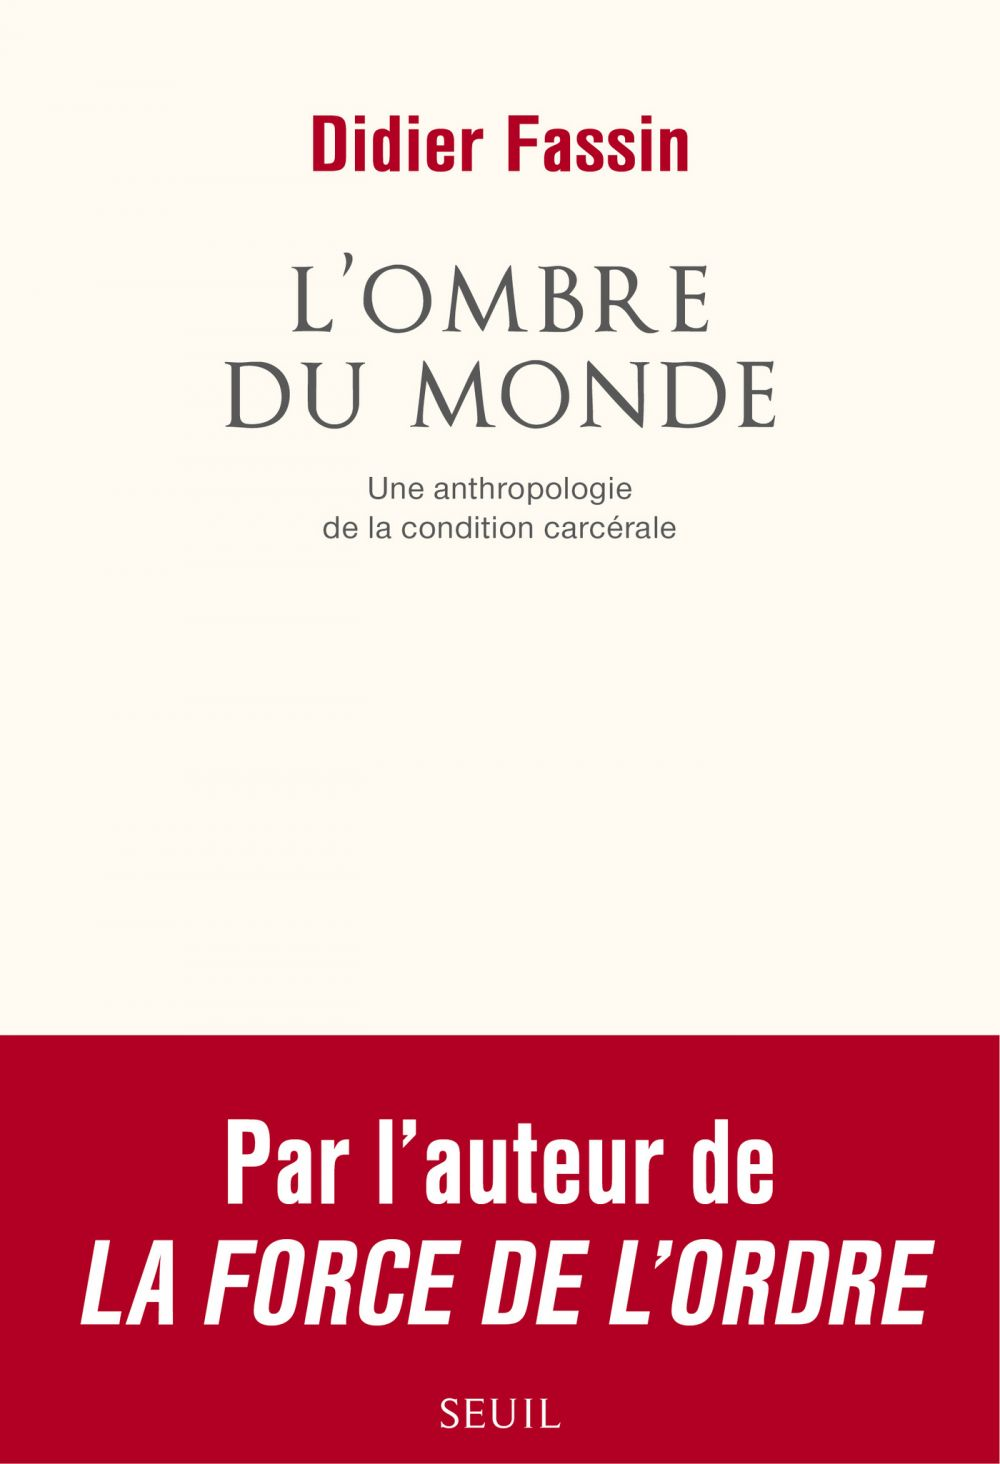 L'Ombre du monde. Une anthropologie de la condition carcérale